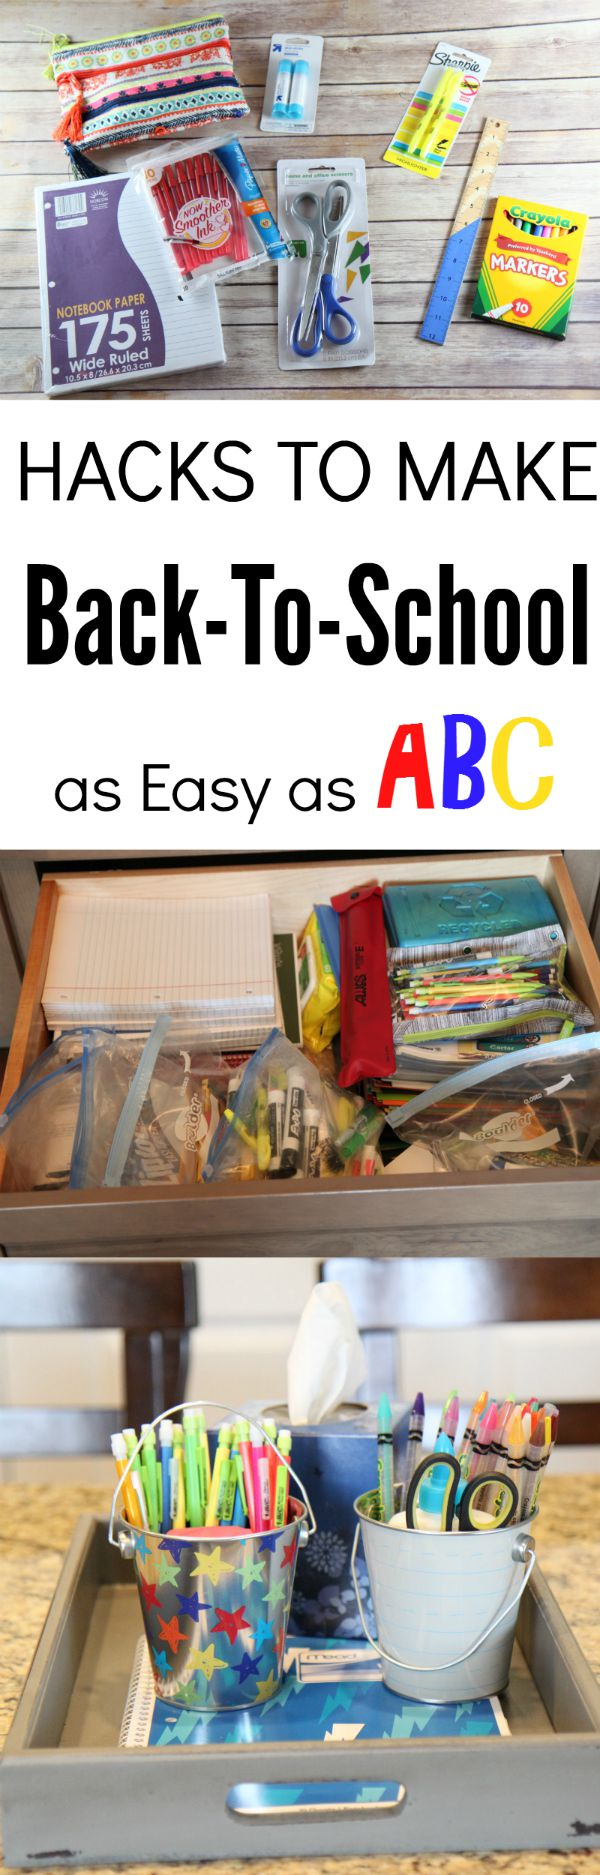 Hacks to Make Back-To-School as Easy as ABC